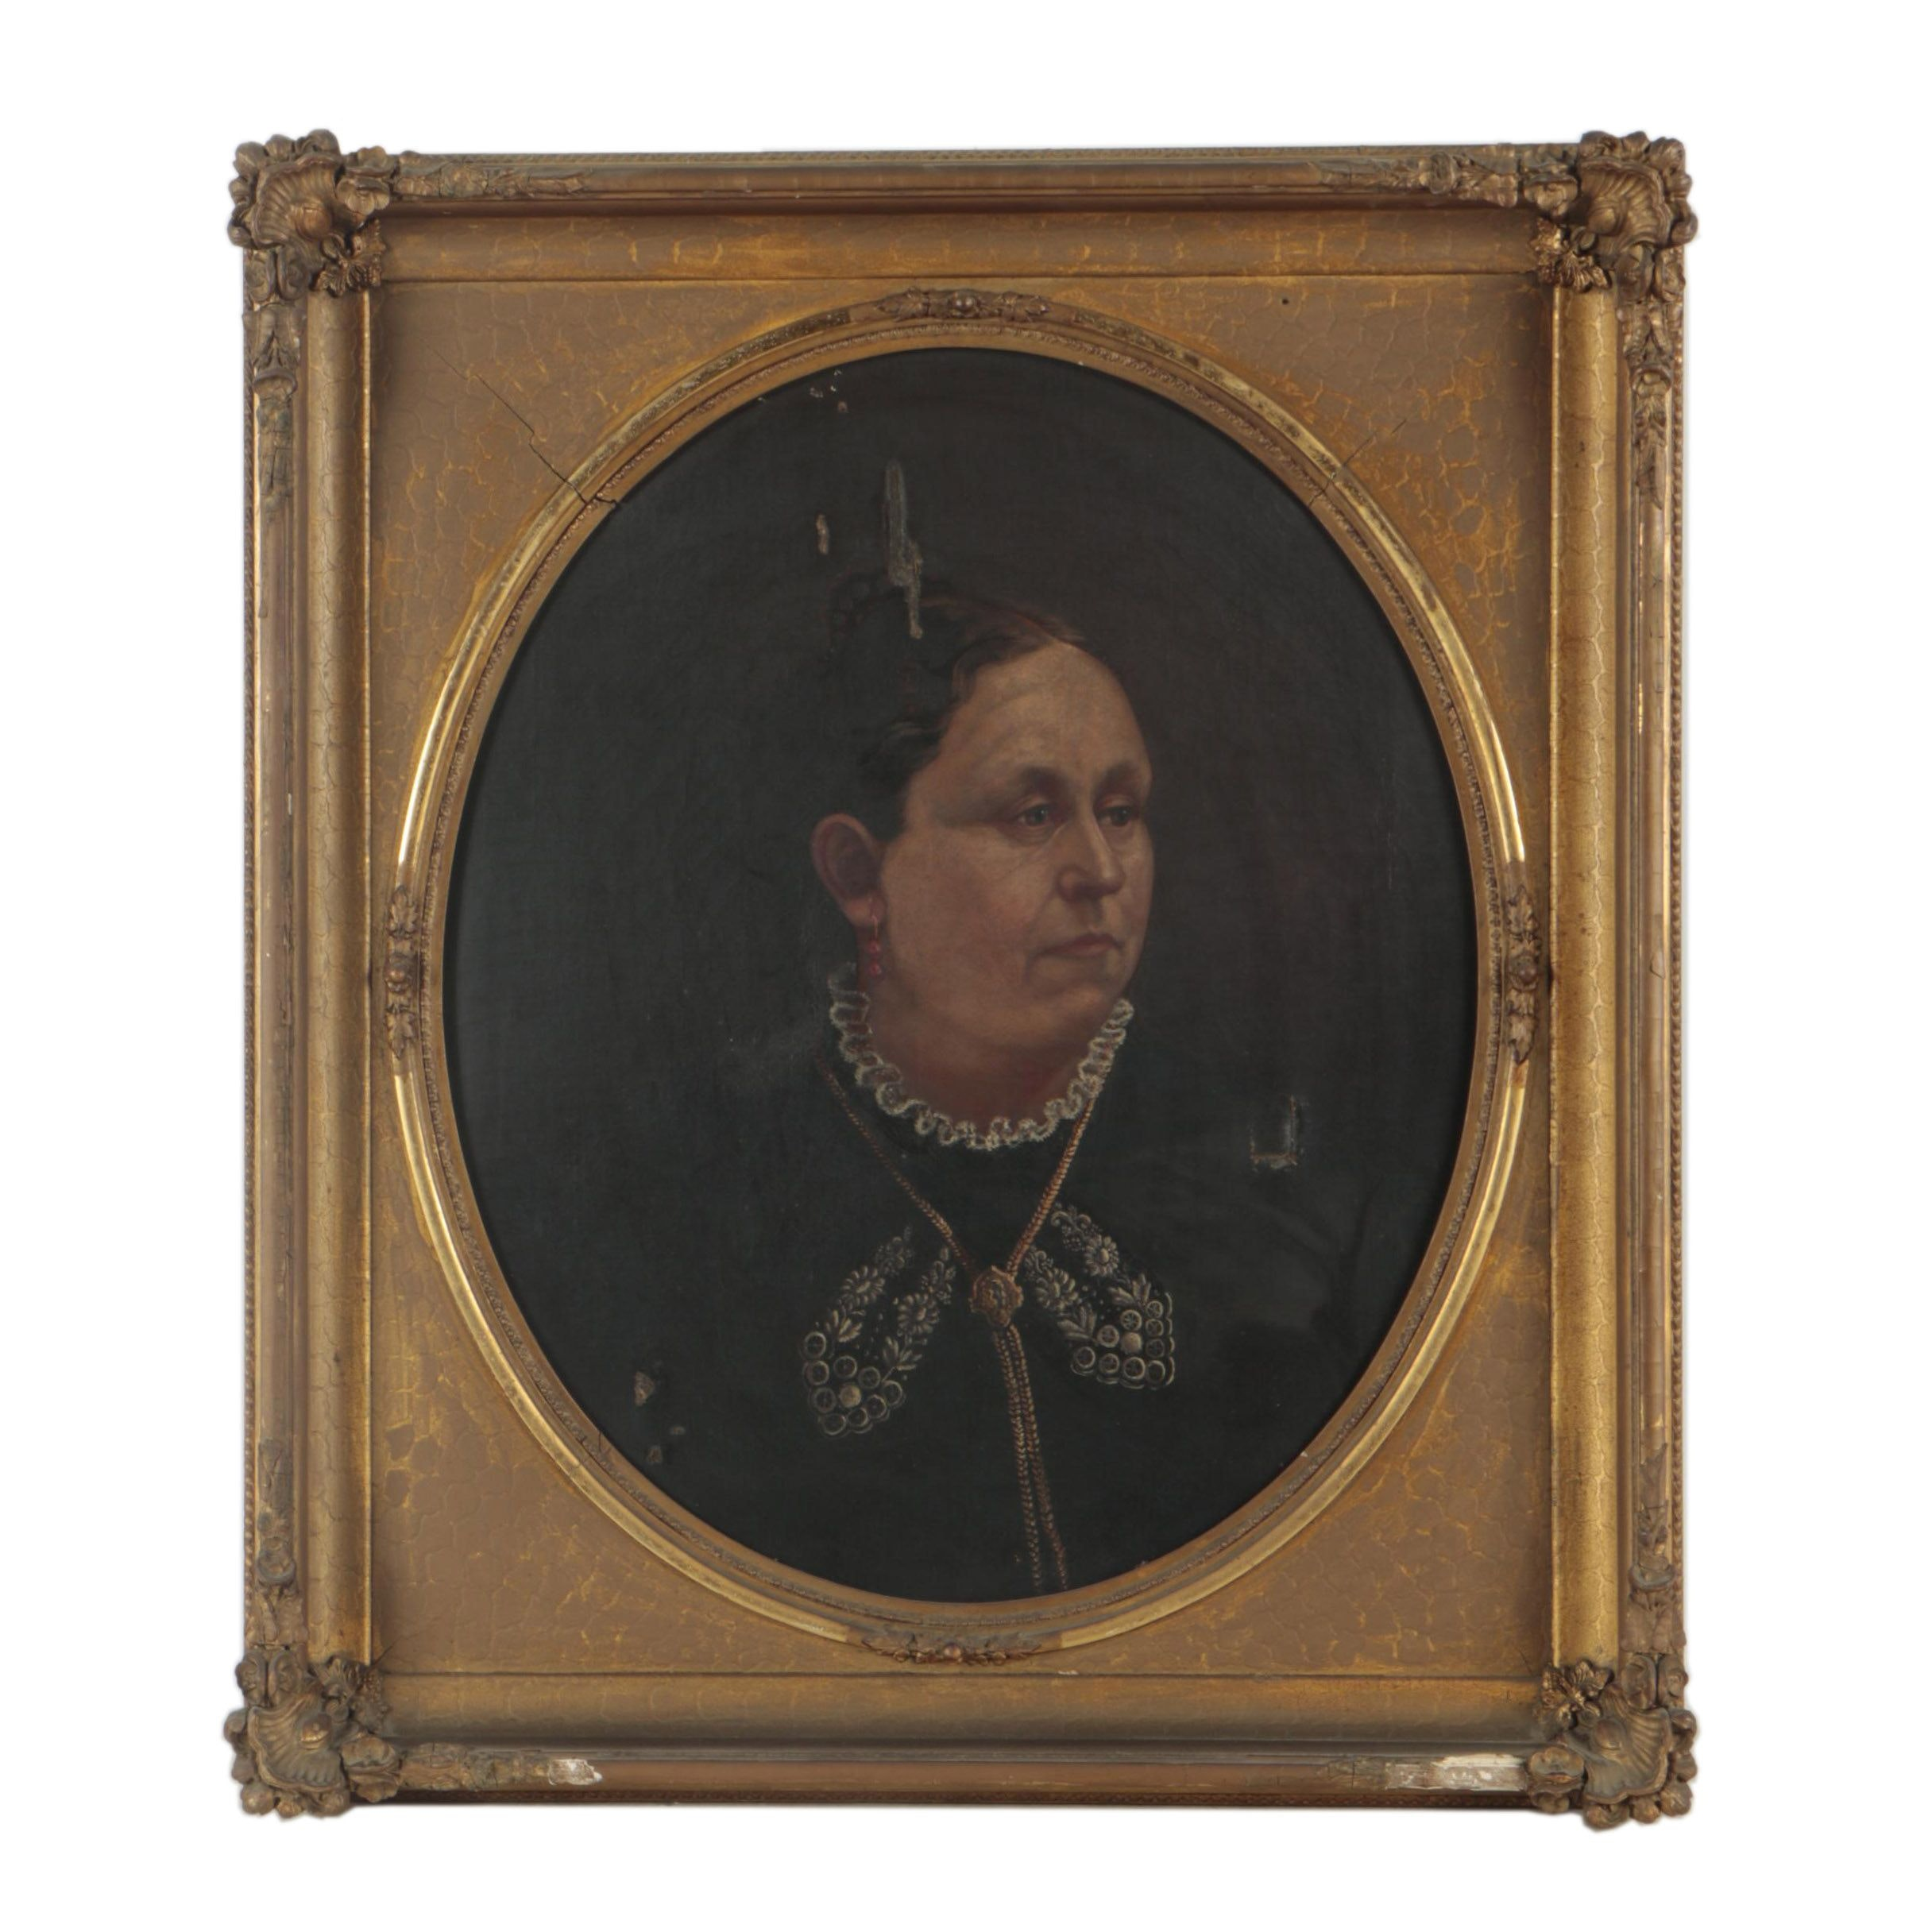 Mid-to-Late 19th-Century Oil Portrait of Woman with Ruffled Collar